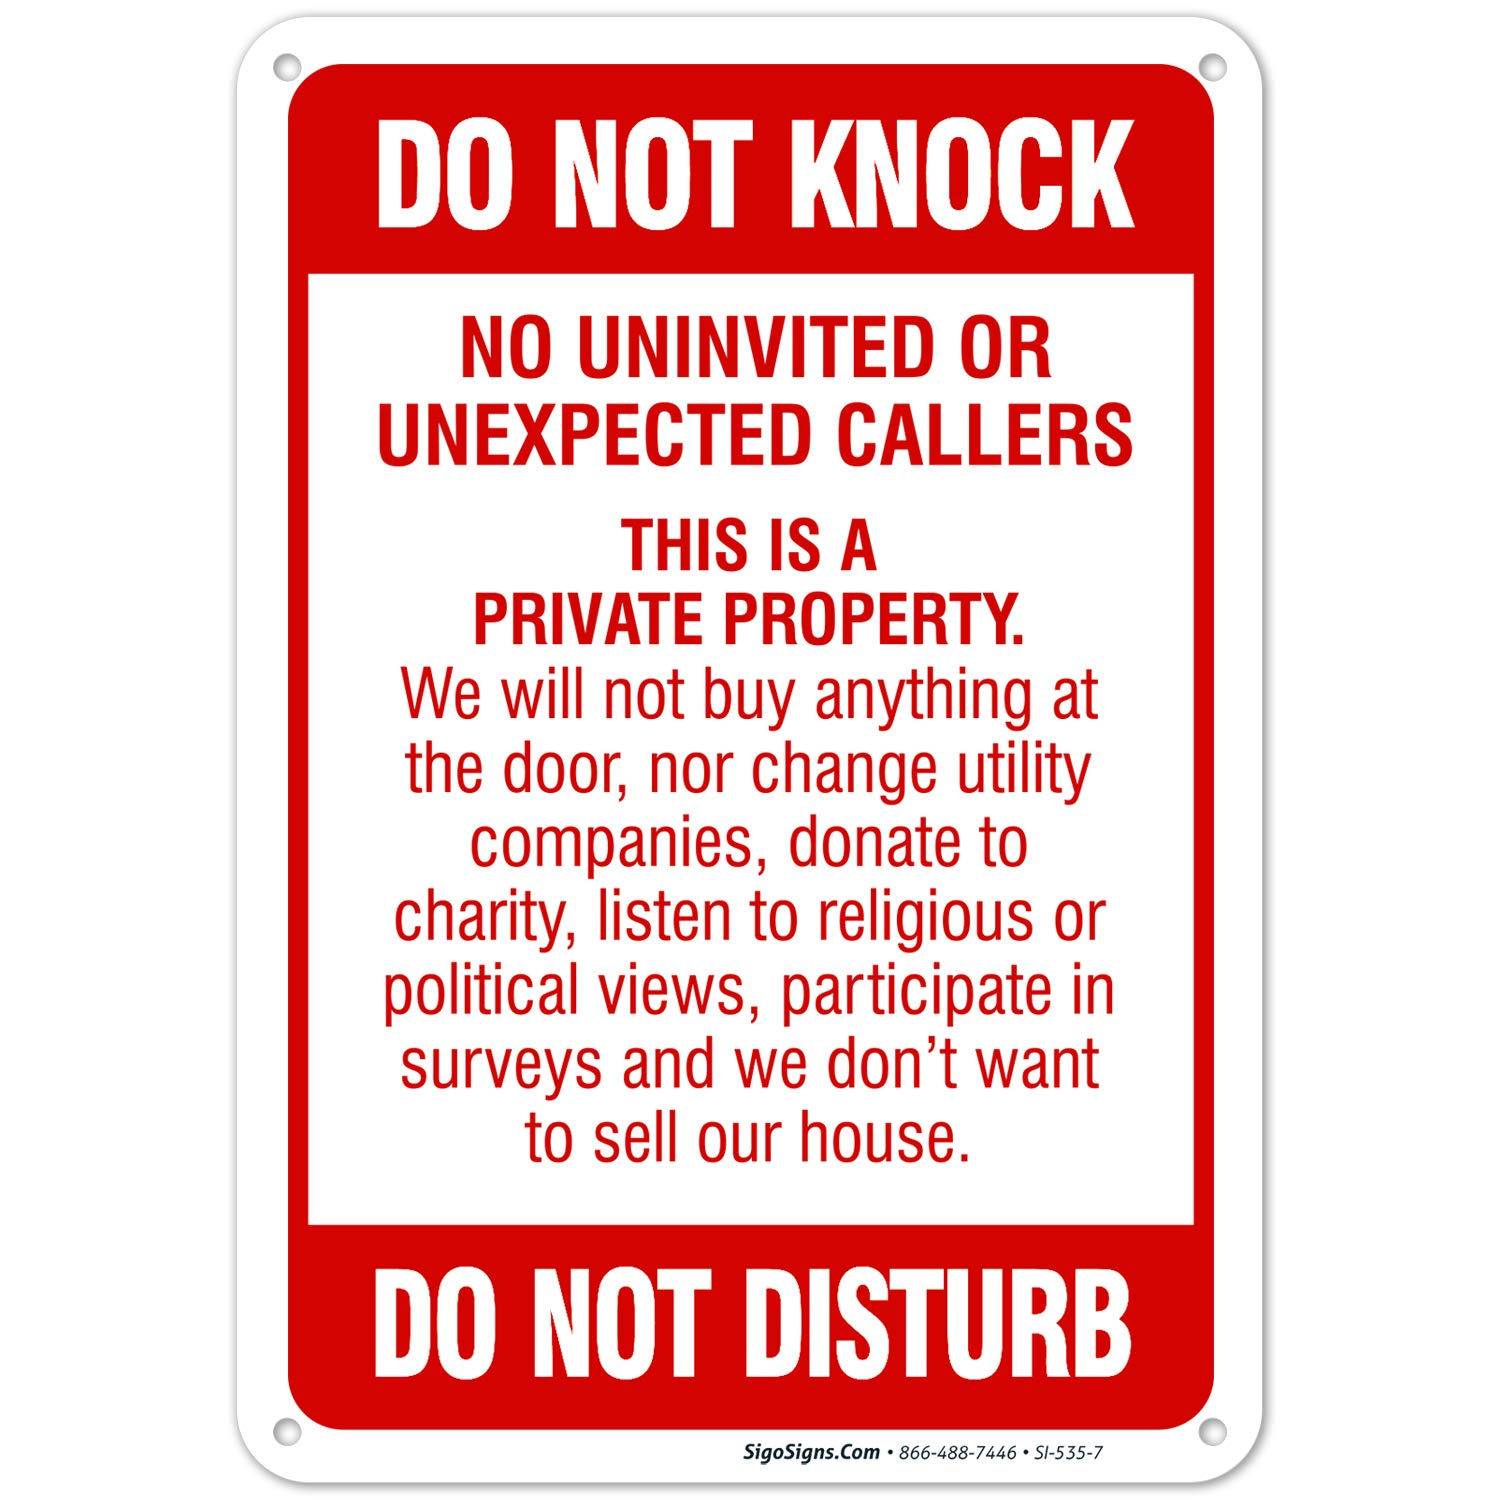 Do Not Knock Do Not Disturb Sign, No Soliciting Sign, 10x7 Rust Free Aluminum, Weather/Fade Resistant, Easy Mounting, Indoor/Outdoor Use, Made in USA by SIGO SIGNS